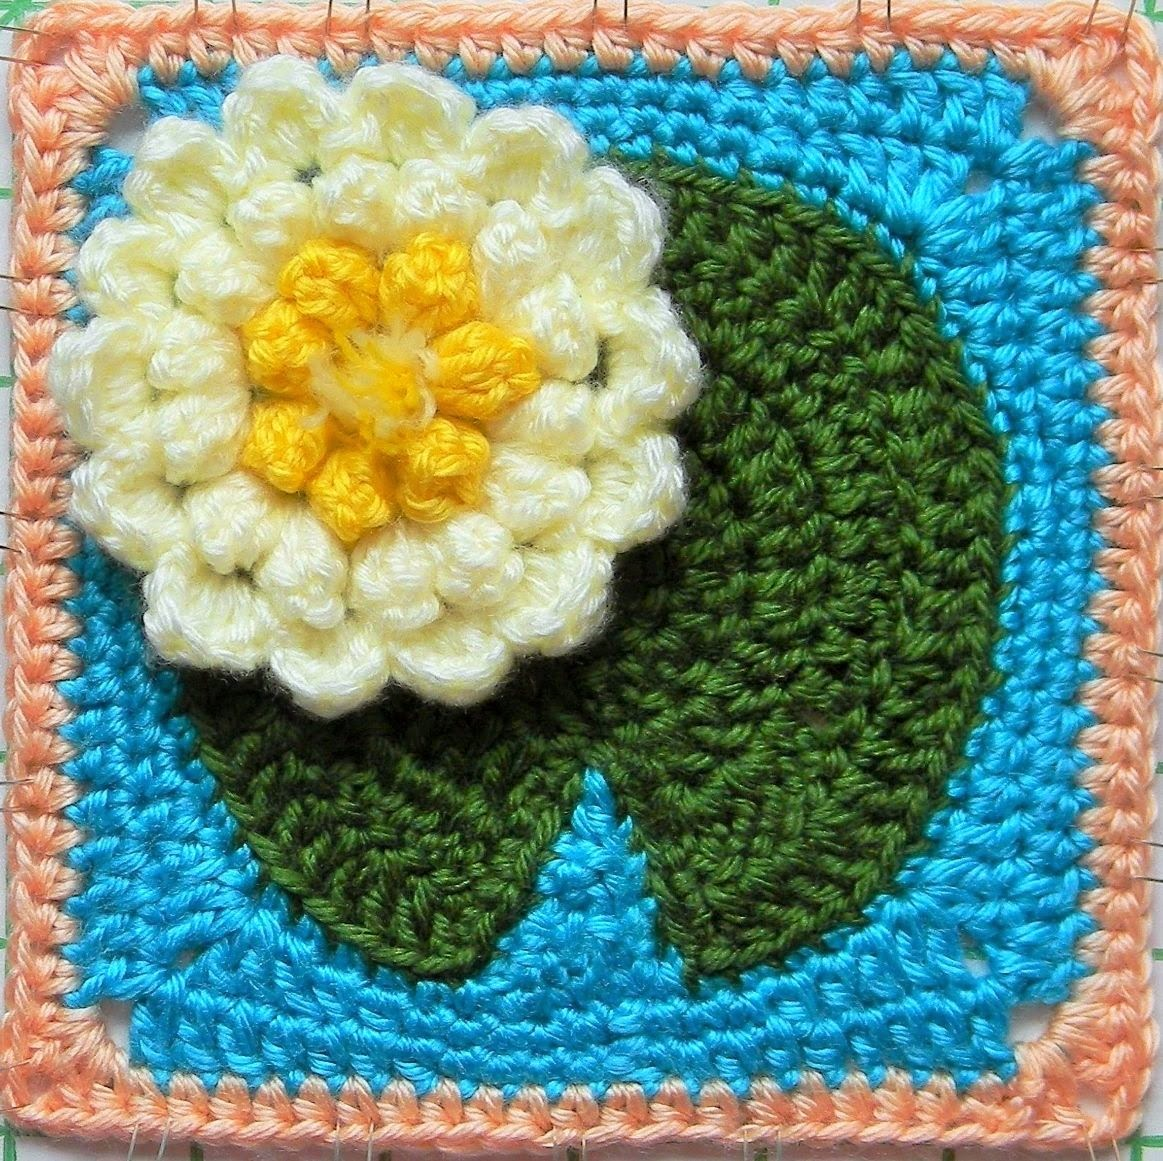 Scrap yarn ideas  - Crocheted Water Lily Flower